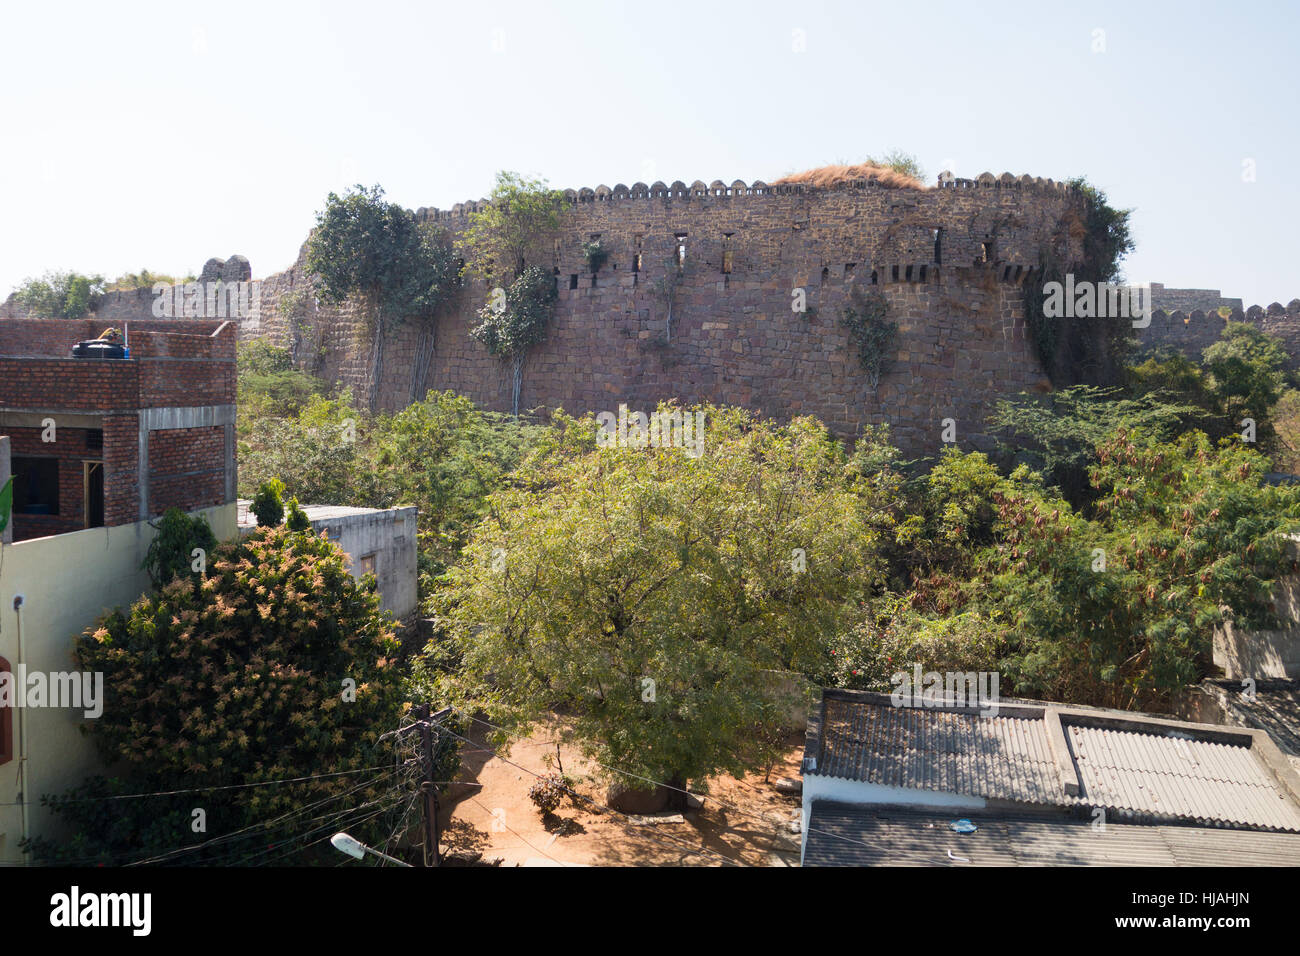 HYDERABAD,INDIA - JAN.21,2017 Residential houses outside the wall of 400 year old Golconda Fort in Hyderabad,India - Stock Image